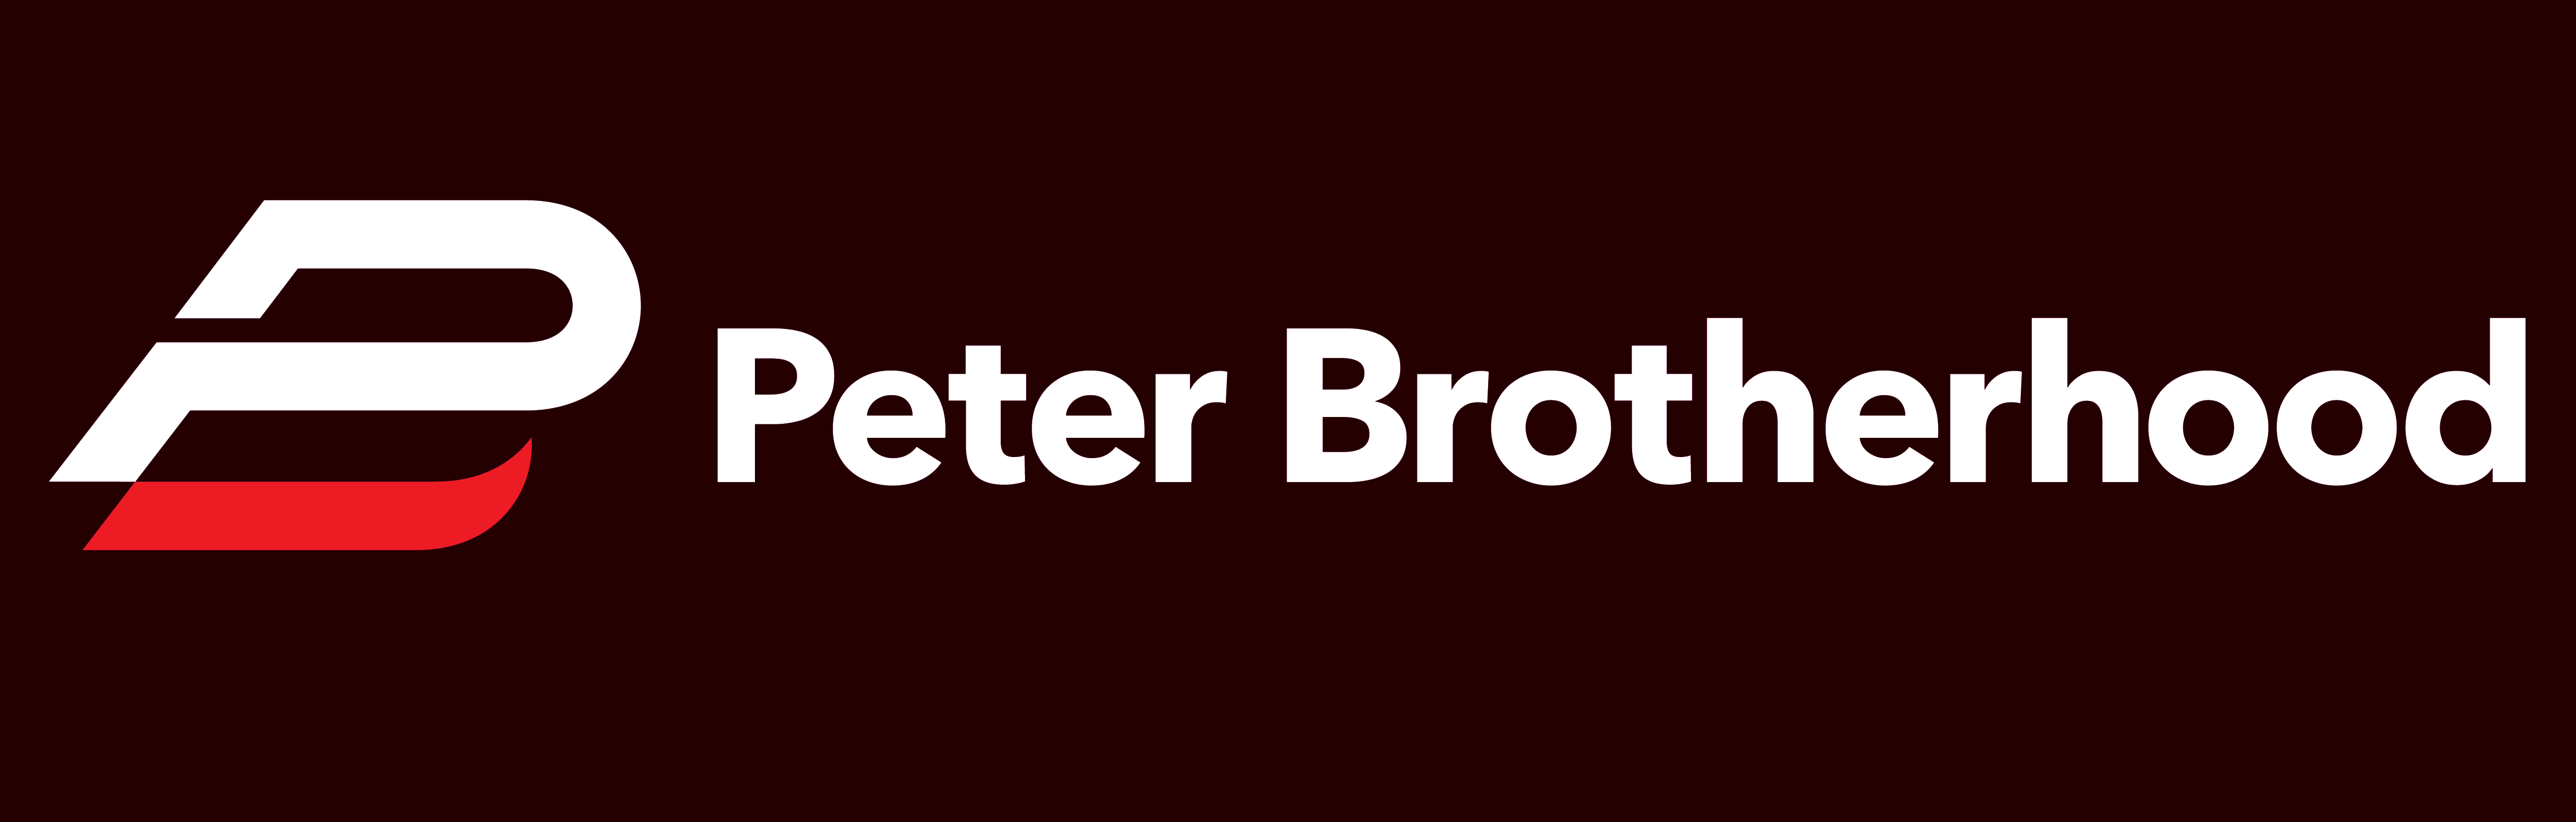 Peter Brotherhood